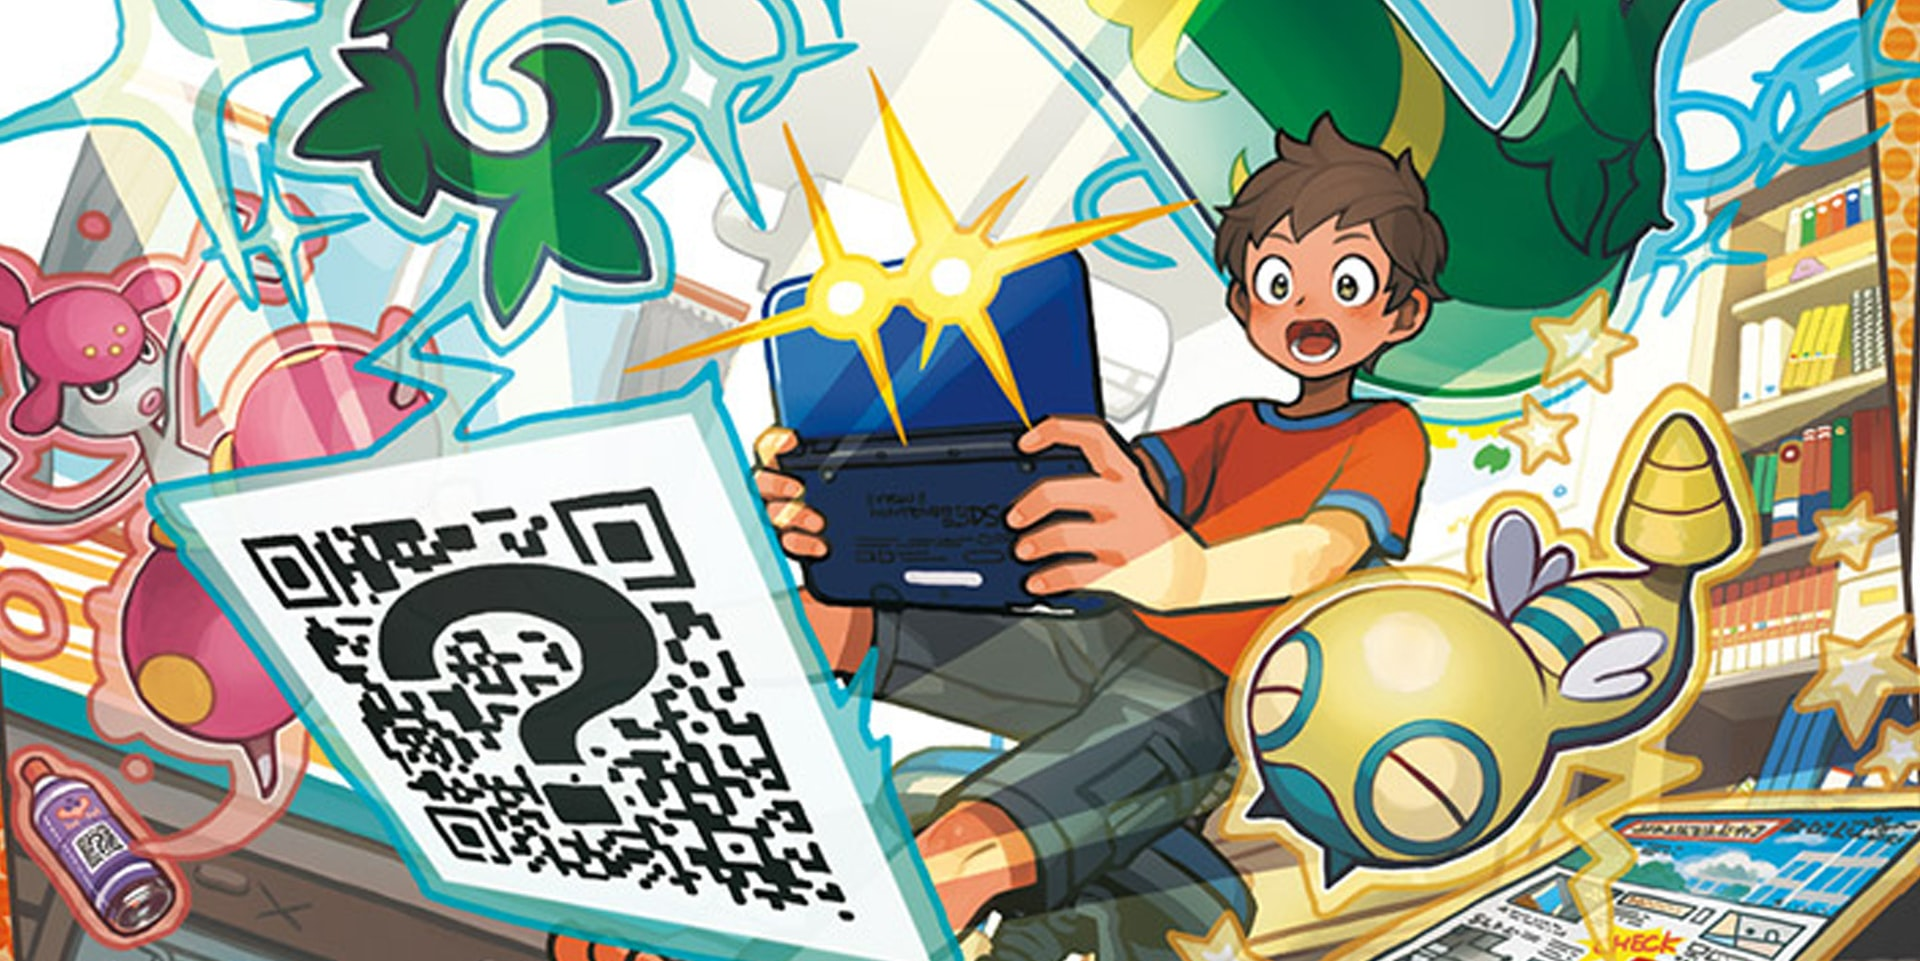 Second Pokemon Sun Moon Global Mission Ends In Failure Nintendo 3ds Posted On January 9 2017 By Brianne Brian News